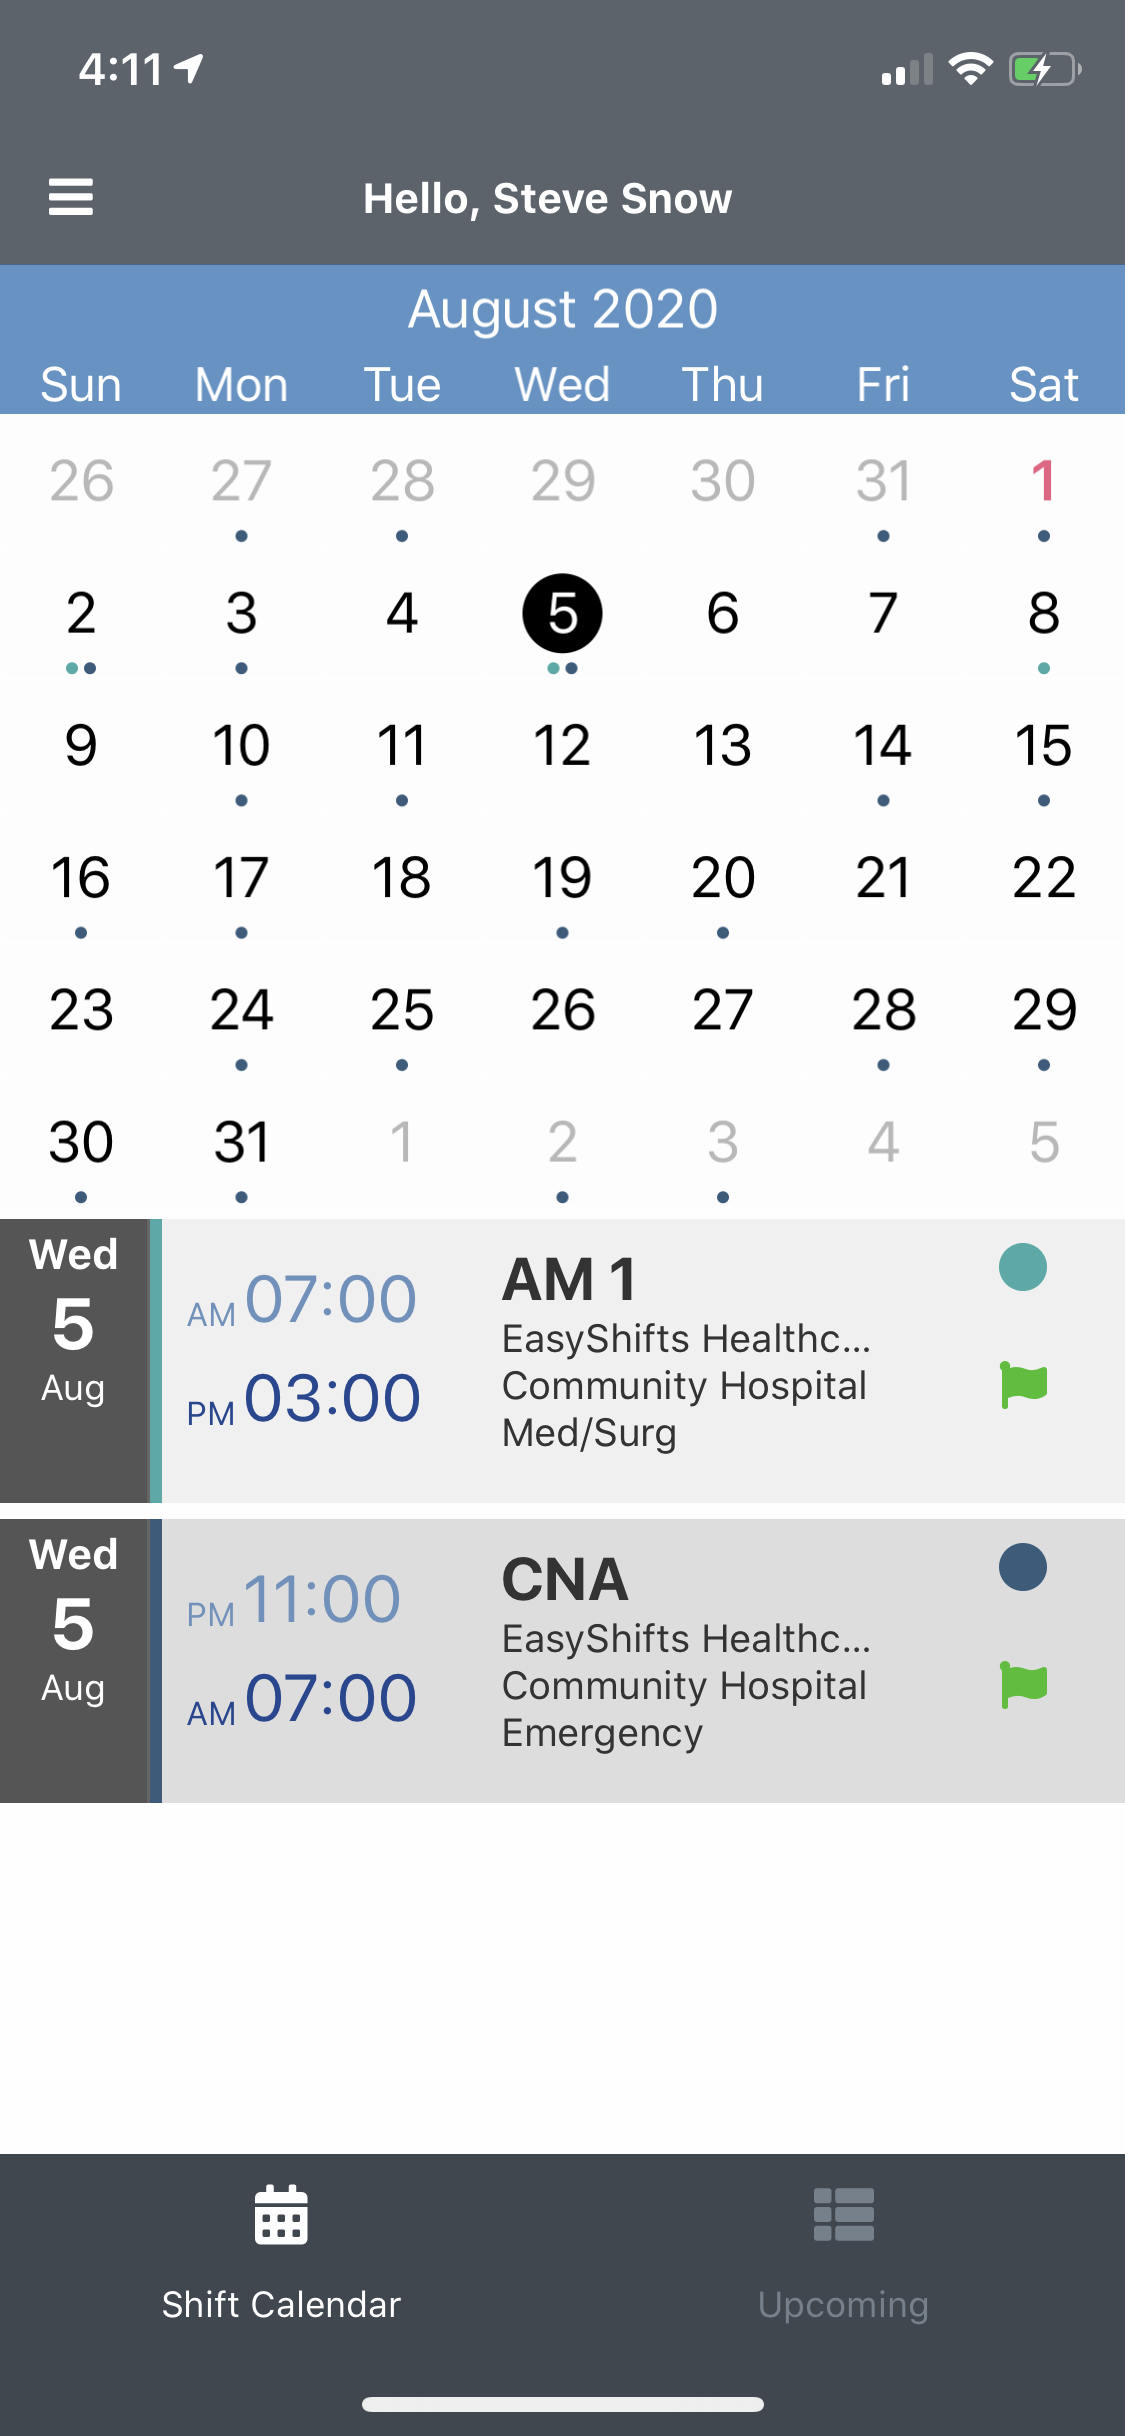 EasyShifts Software - Employees can view their personal schedule across all assigned departments